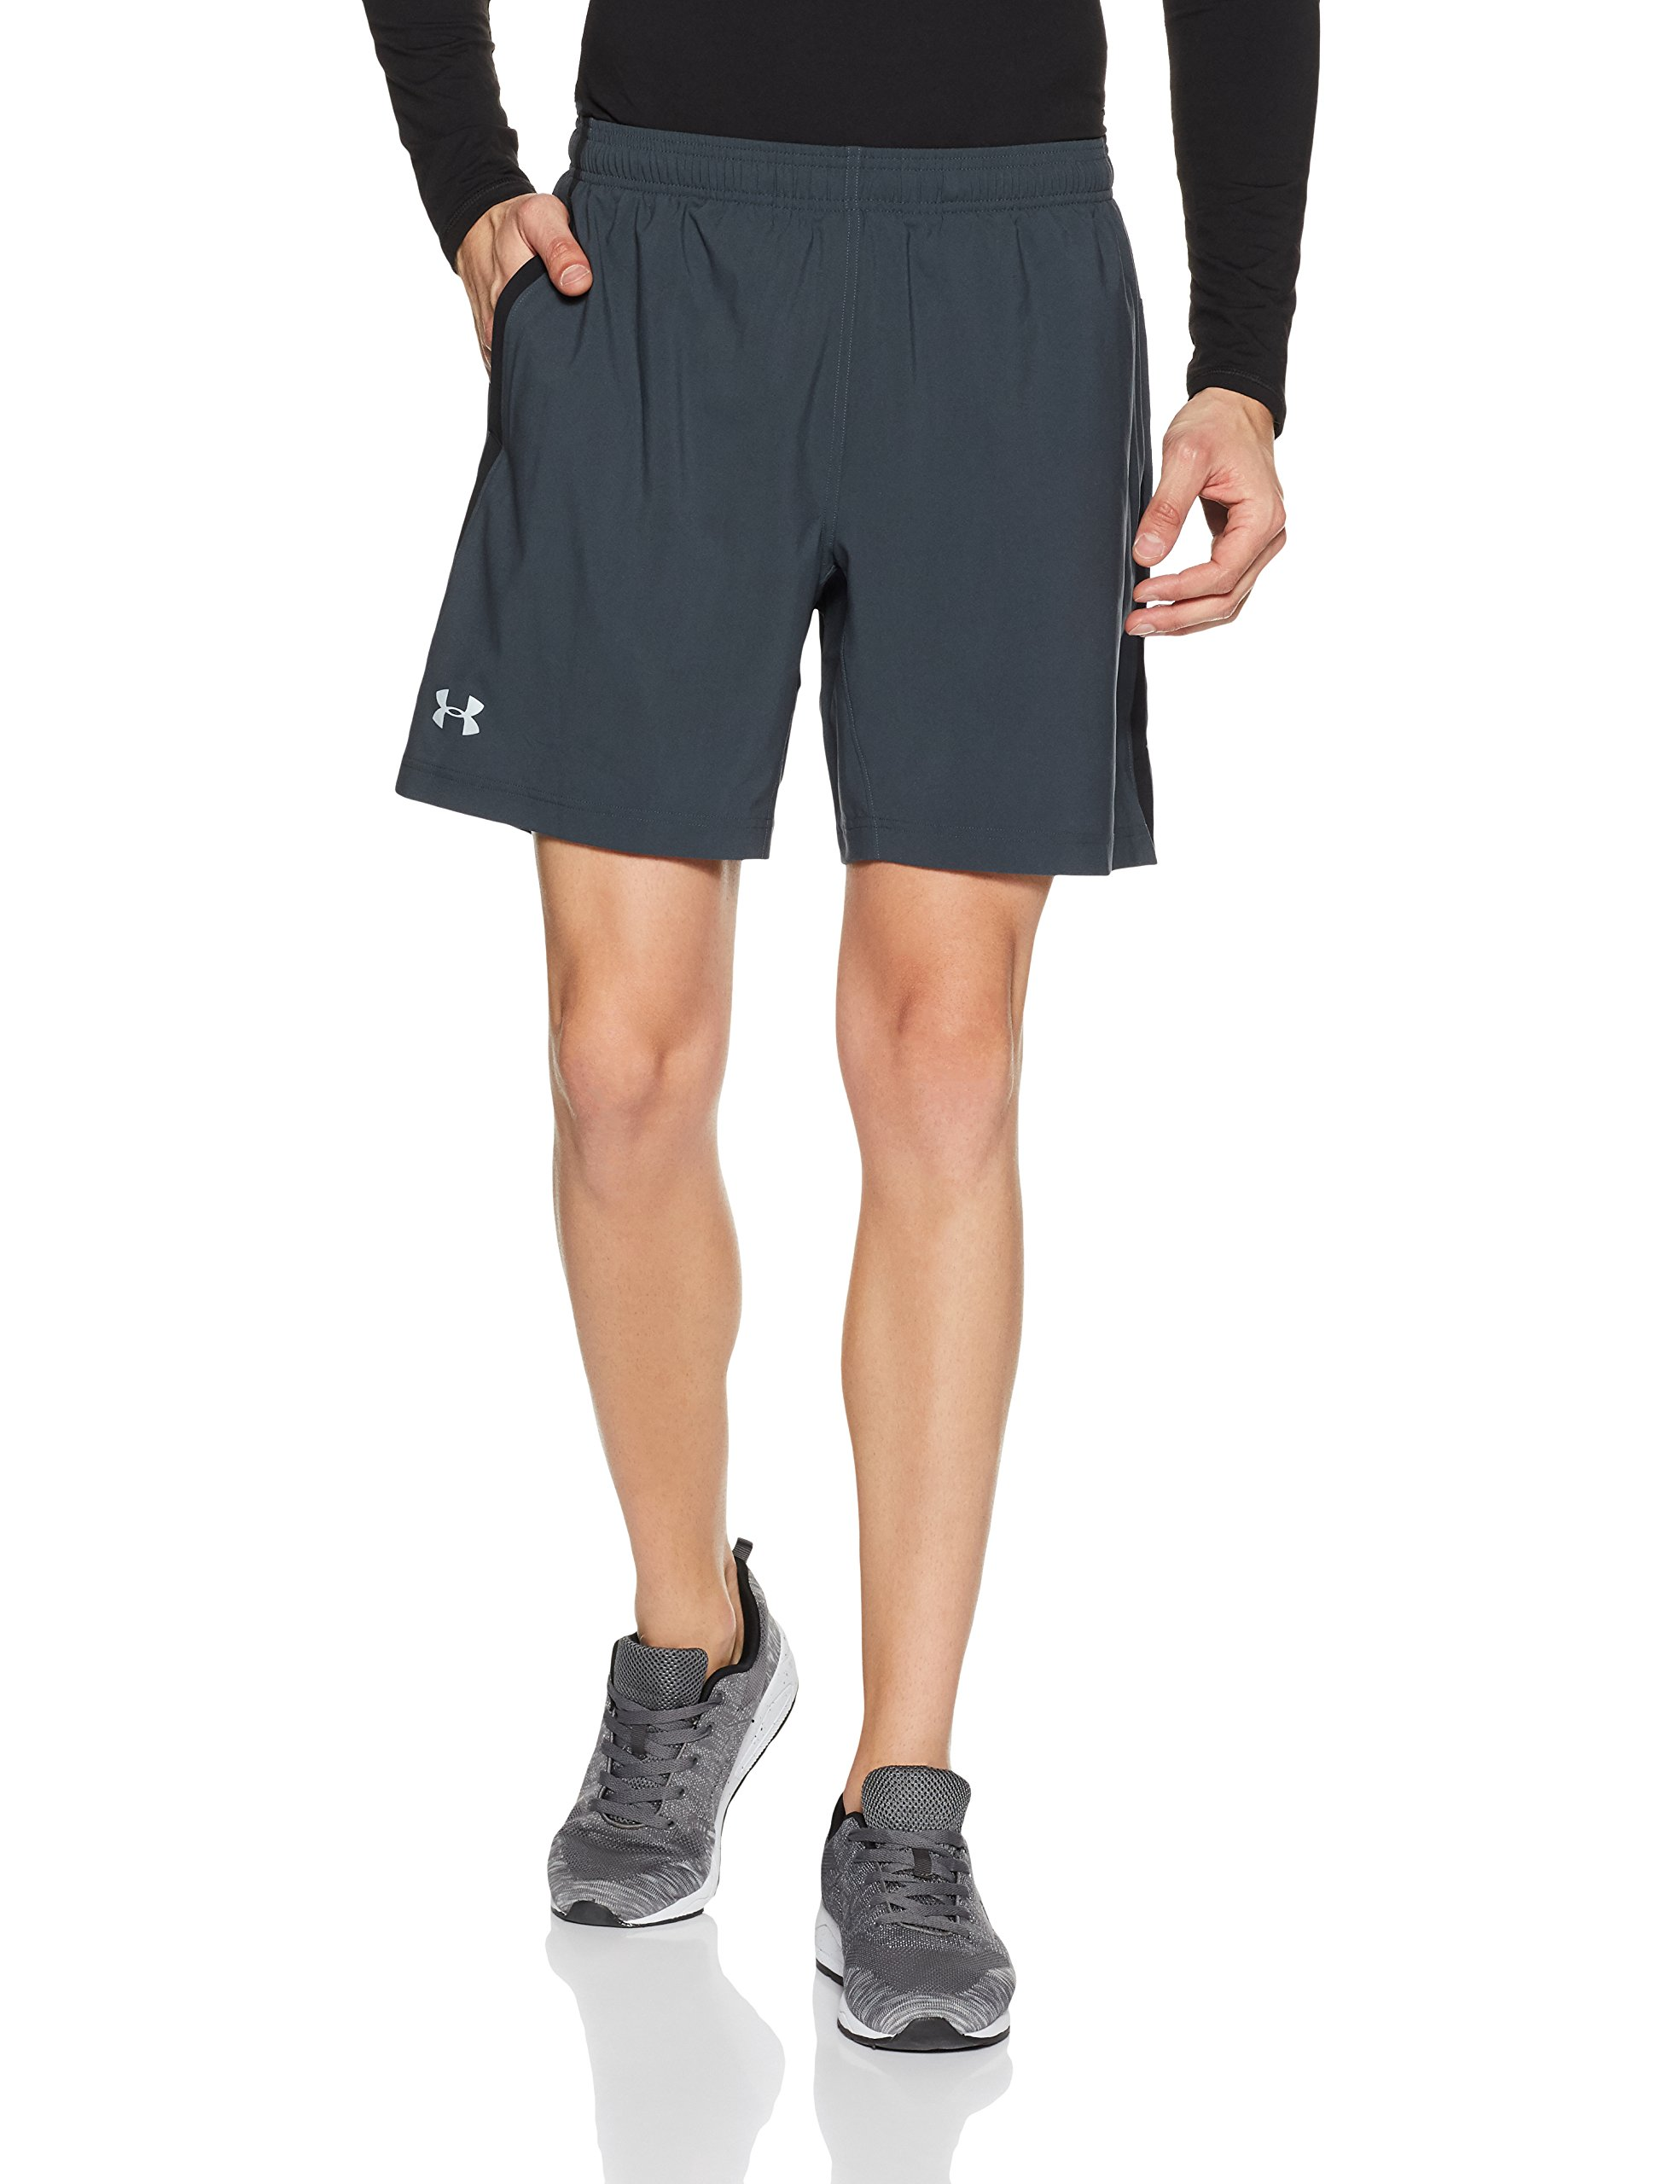 Under Armour Men's Launch 2-in-1 Shorts, Stealth Gray (008)/Reflective, Small